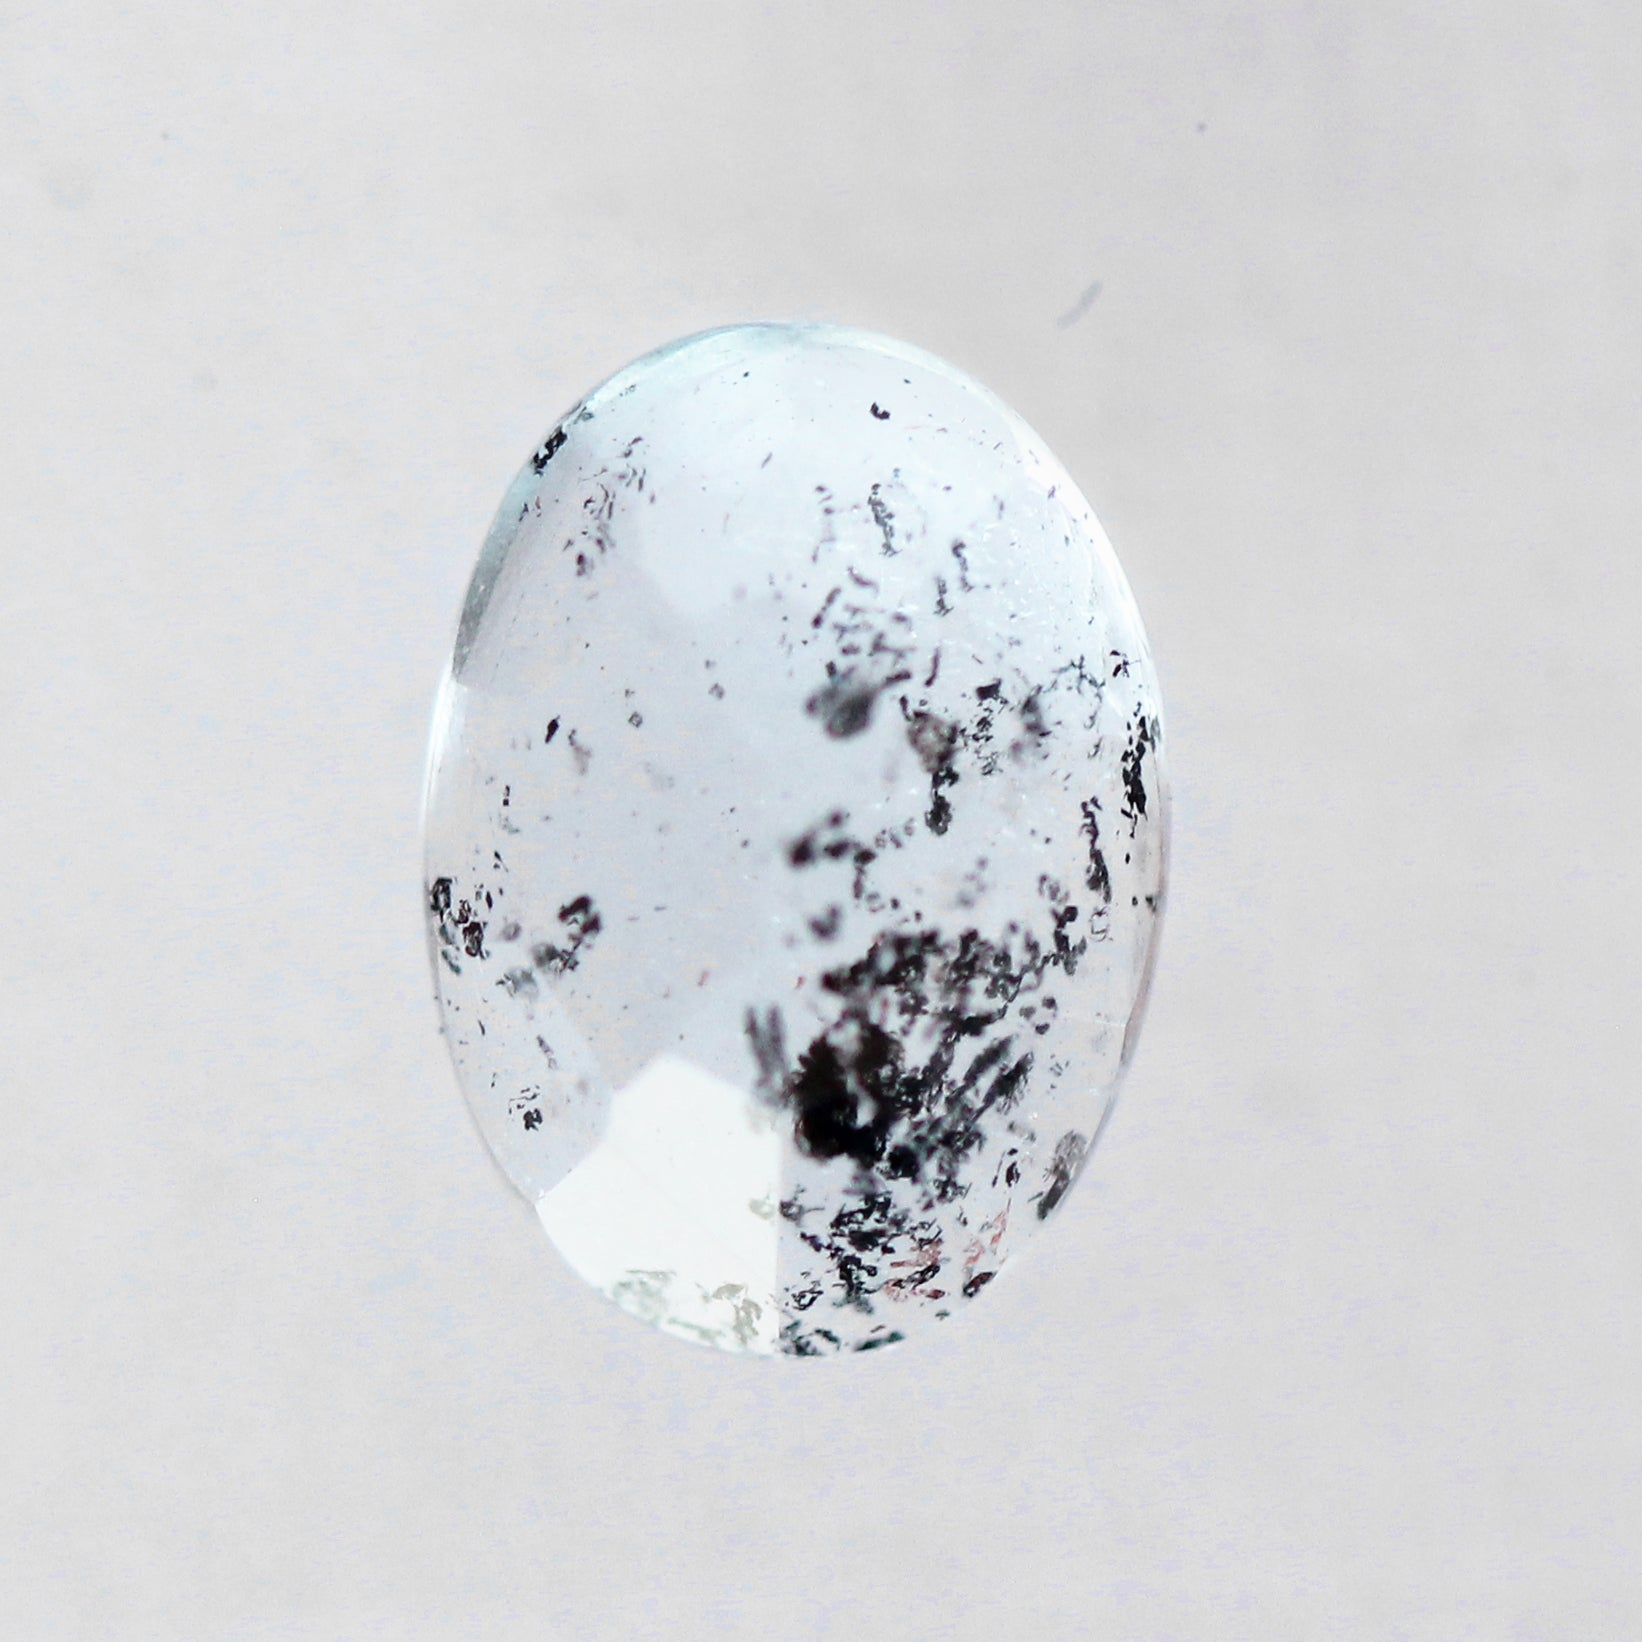 2.16 Carat Oval Moss Aquamarine-Inventory Code ORMA216 - Celestial Diamonds ® by Midwinter Co.